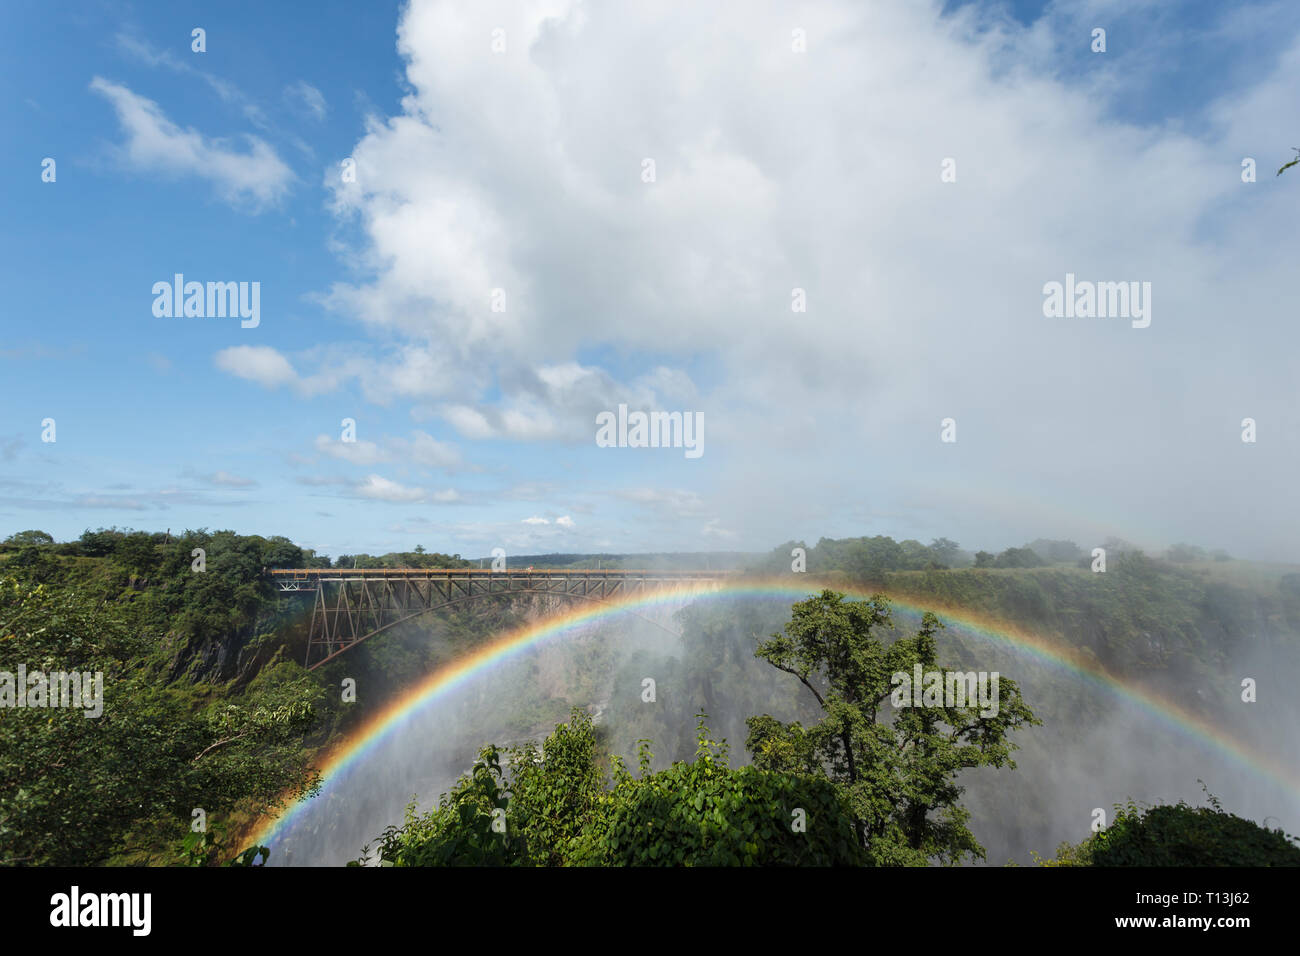 Rainbow shaped like Livingston bridge arches over gorge in Africa - Stock Image